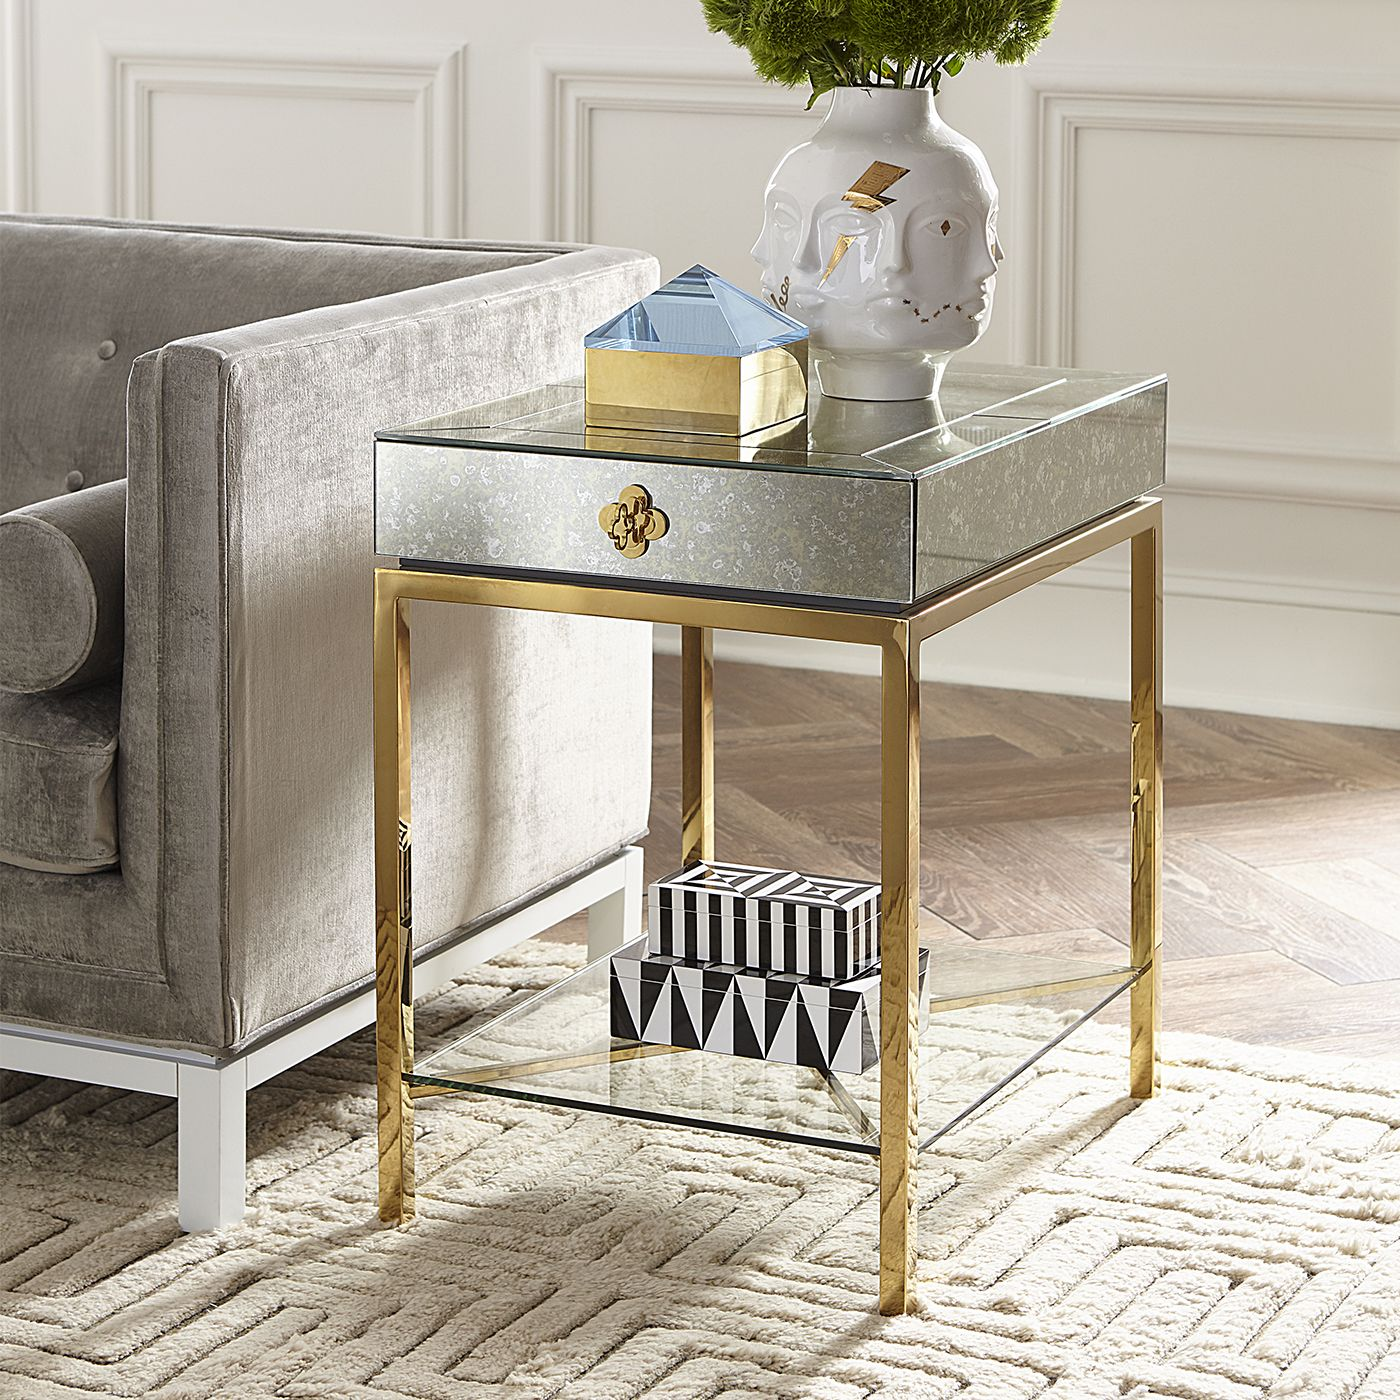 Delphine Tall Side Table In 2020 Tall Side Table Side Table Living Room Decor Apartment #tall #living #room #table